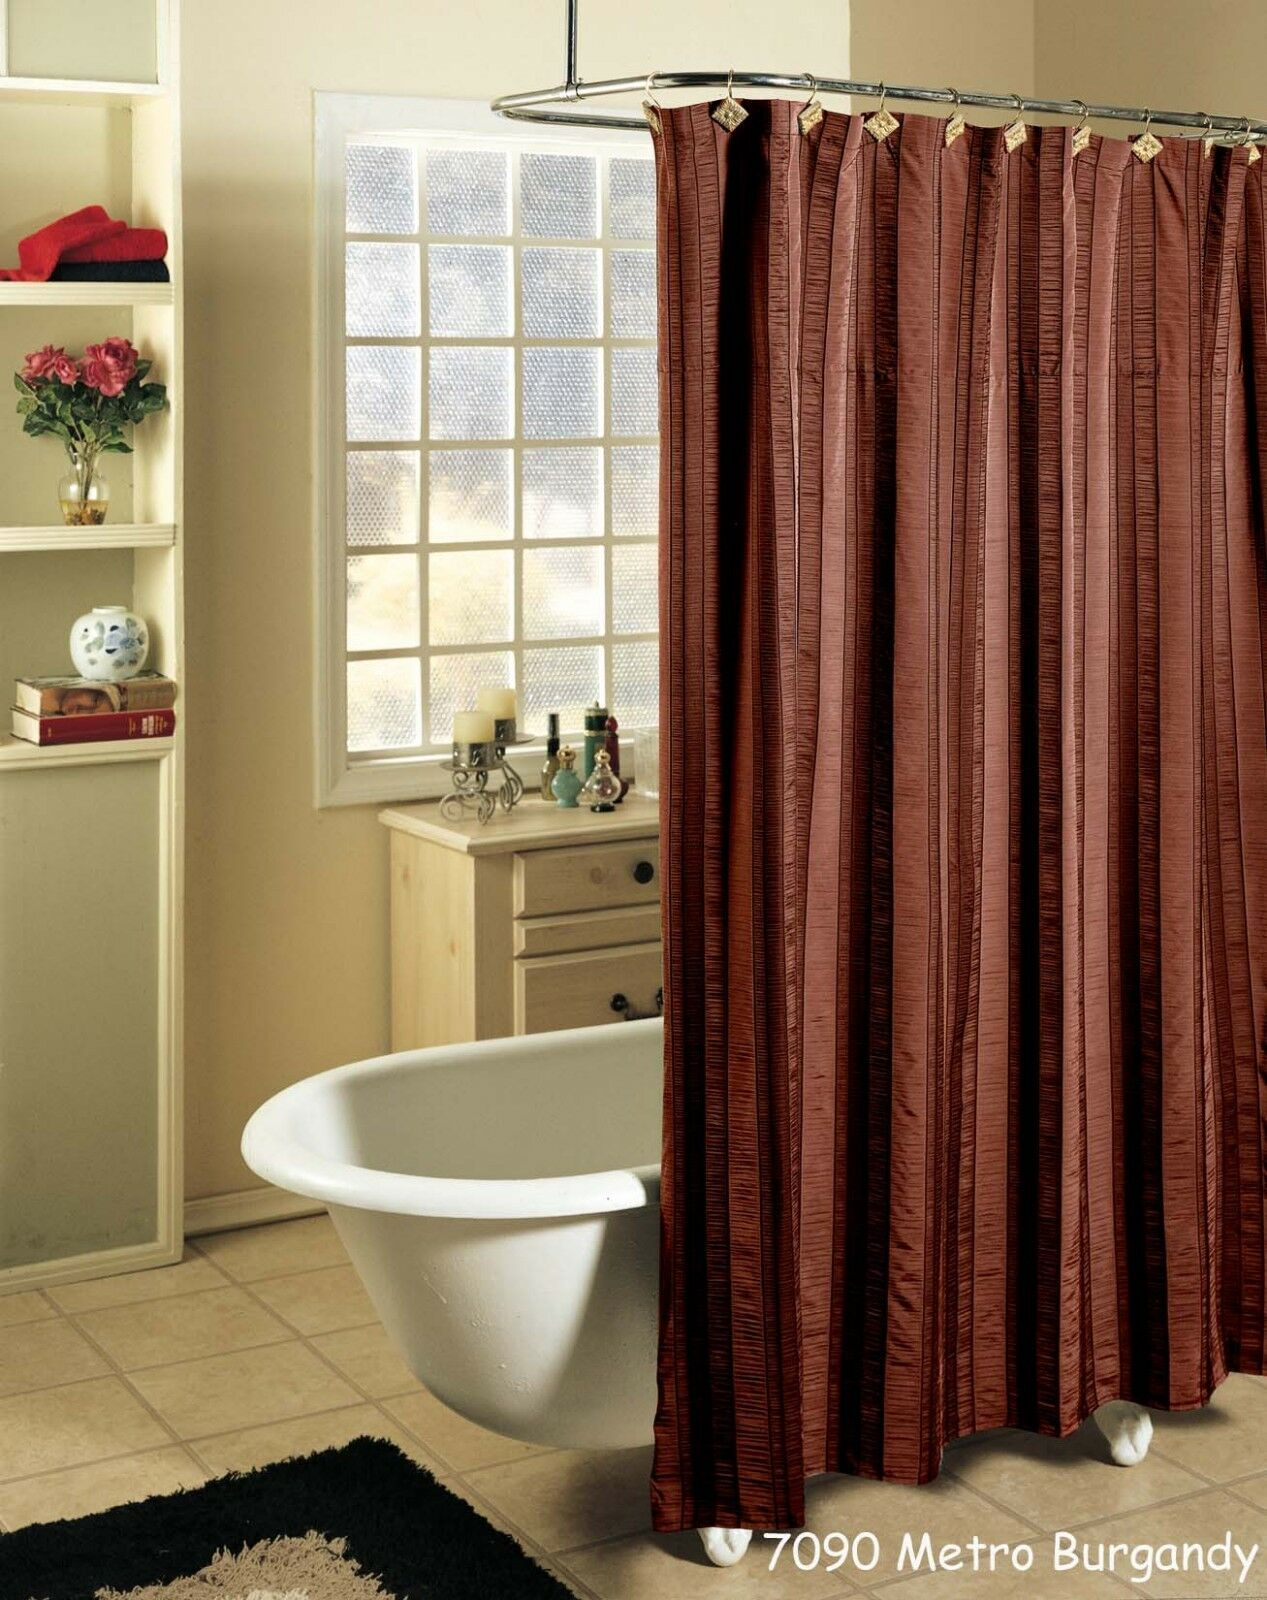 Metro Stripe Fabric Shower Curtain Burgundy With Black Holiday Creative Linens For Sale Online